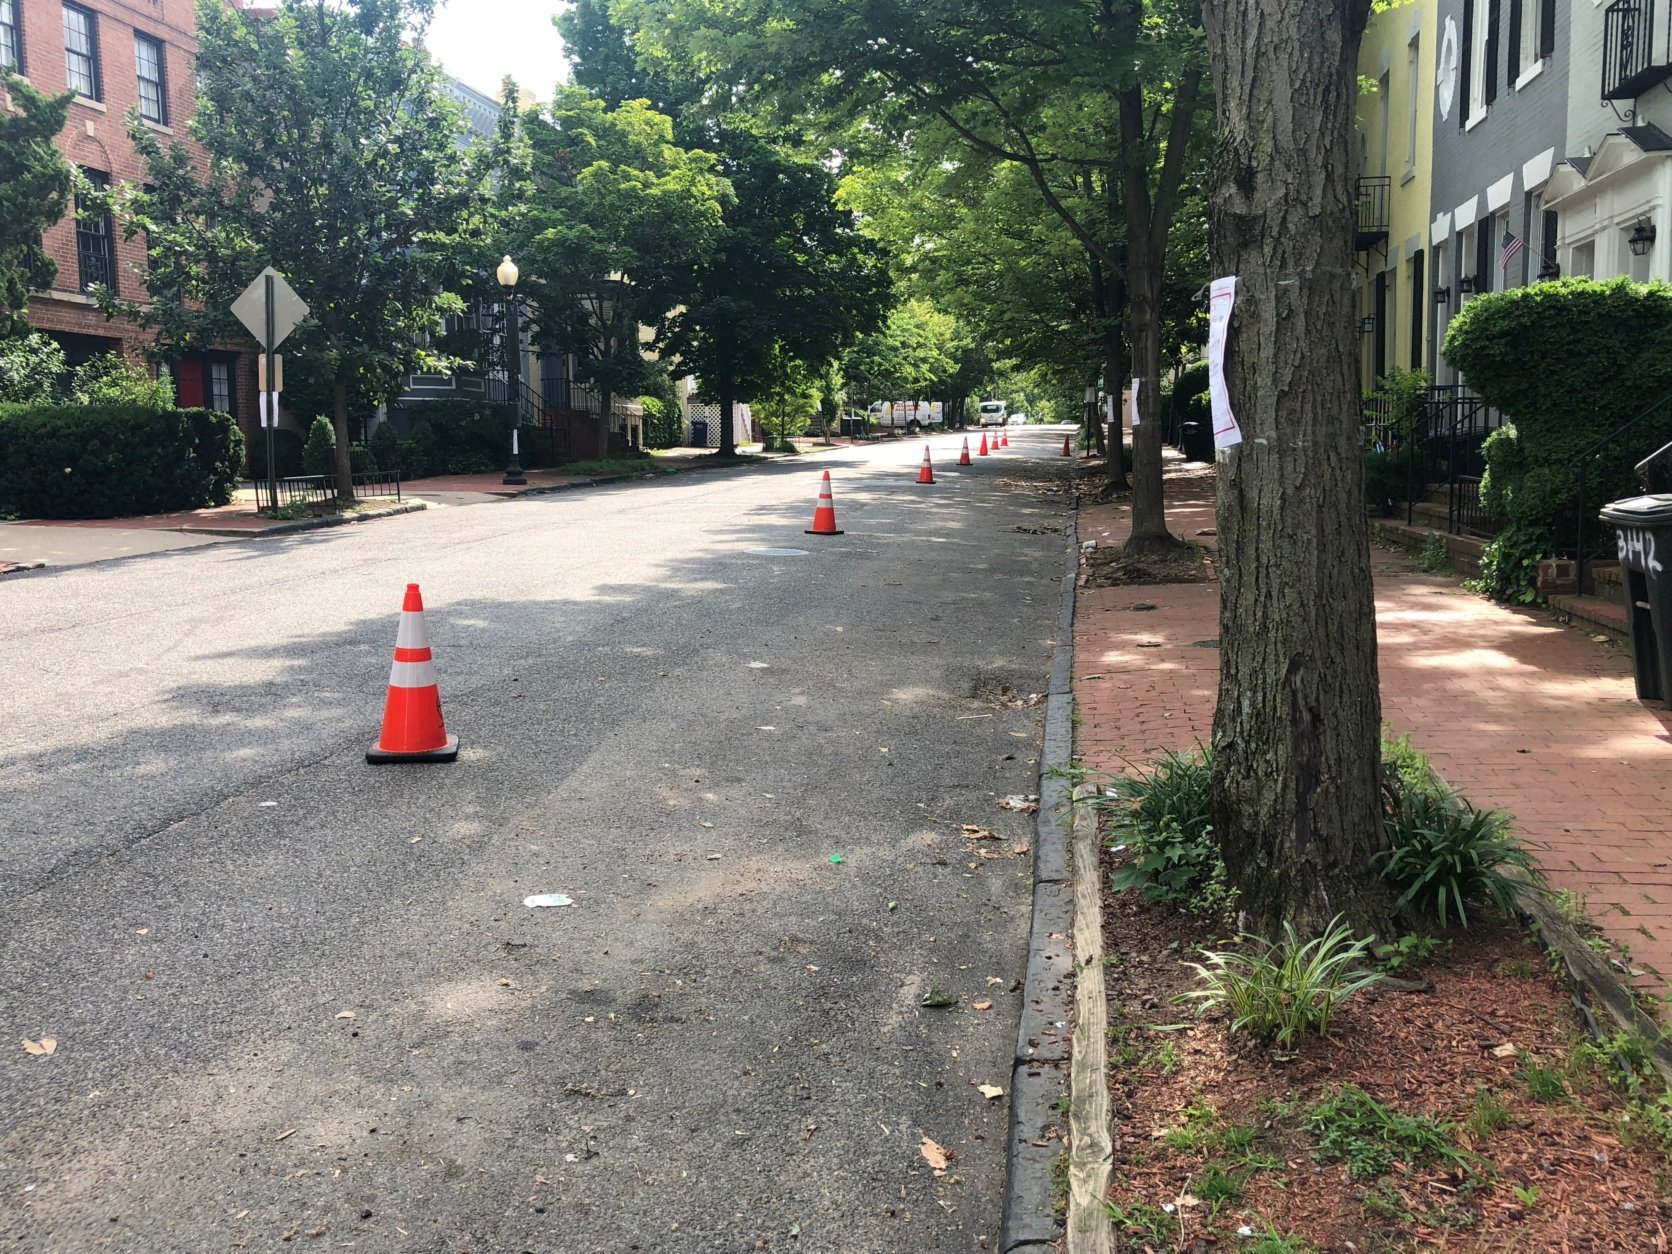 On Thursday, there were intermittent road closures from 6:30 a.m. to 8 p.m. on Wisconsin Avenue NW from M Street to P Street. (WTOP/Melissa Howell)